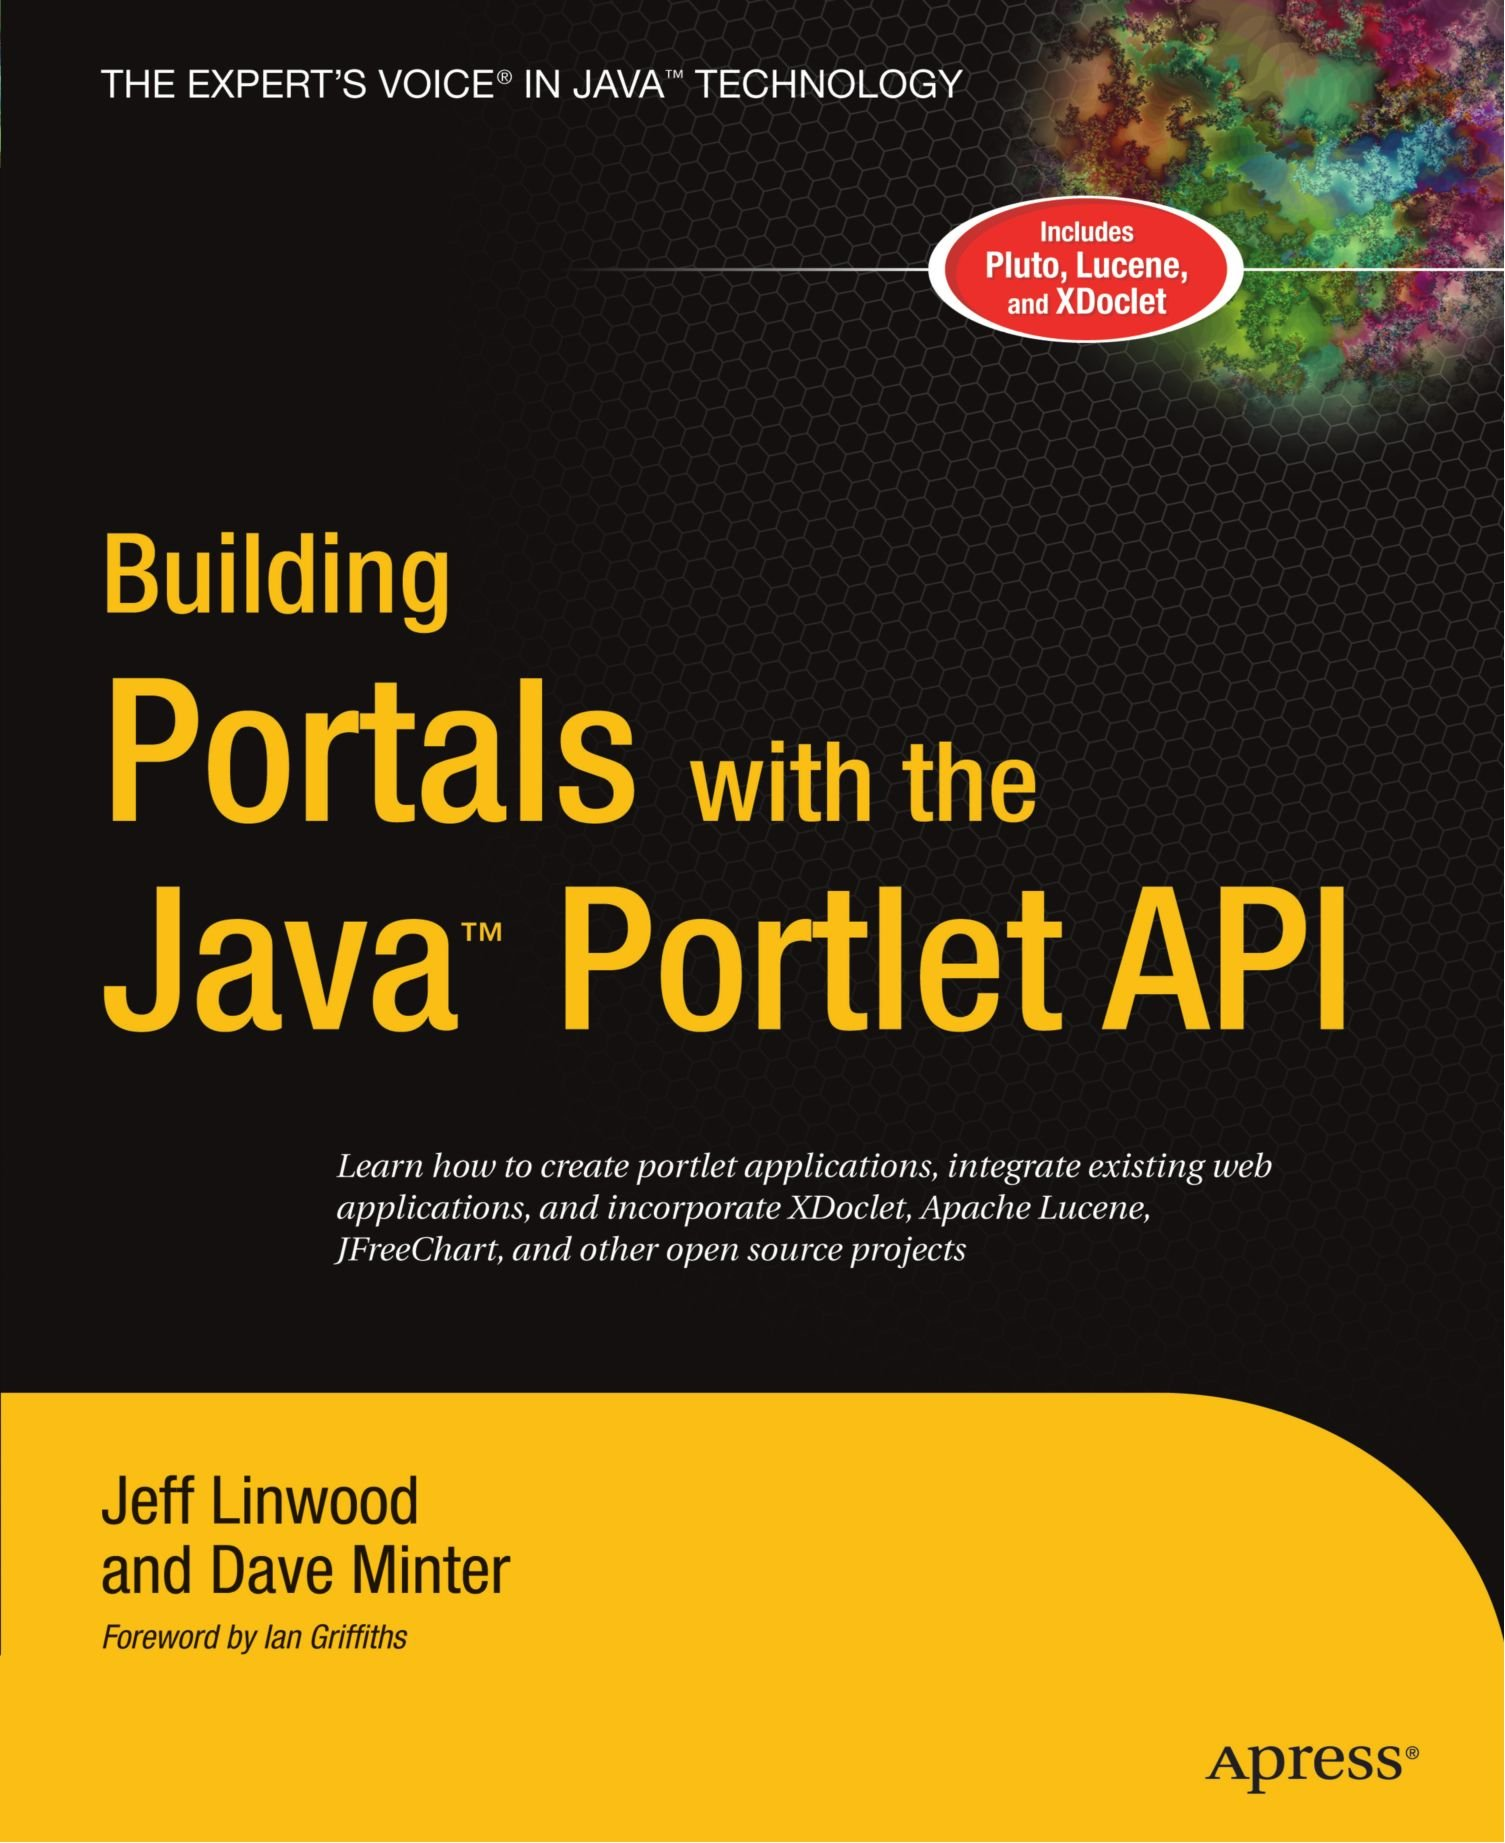 Building Portals with the Java Portlet API (Expert's Voice) free download